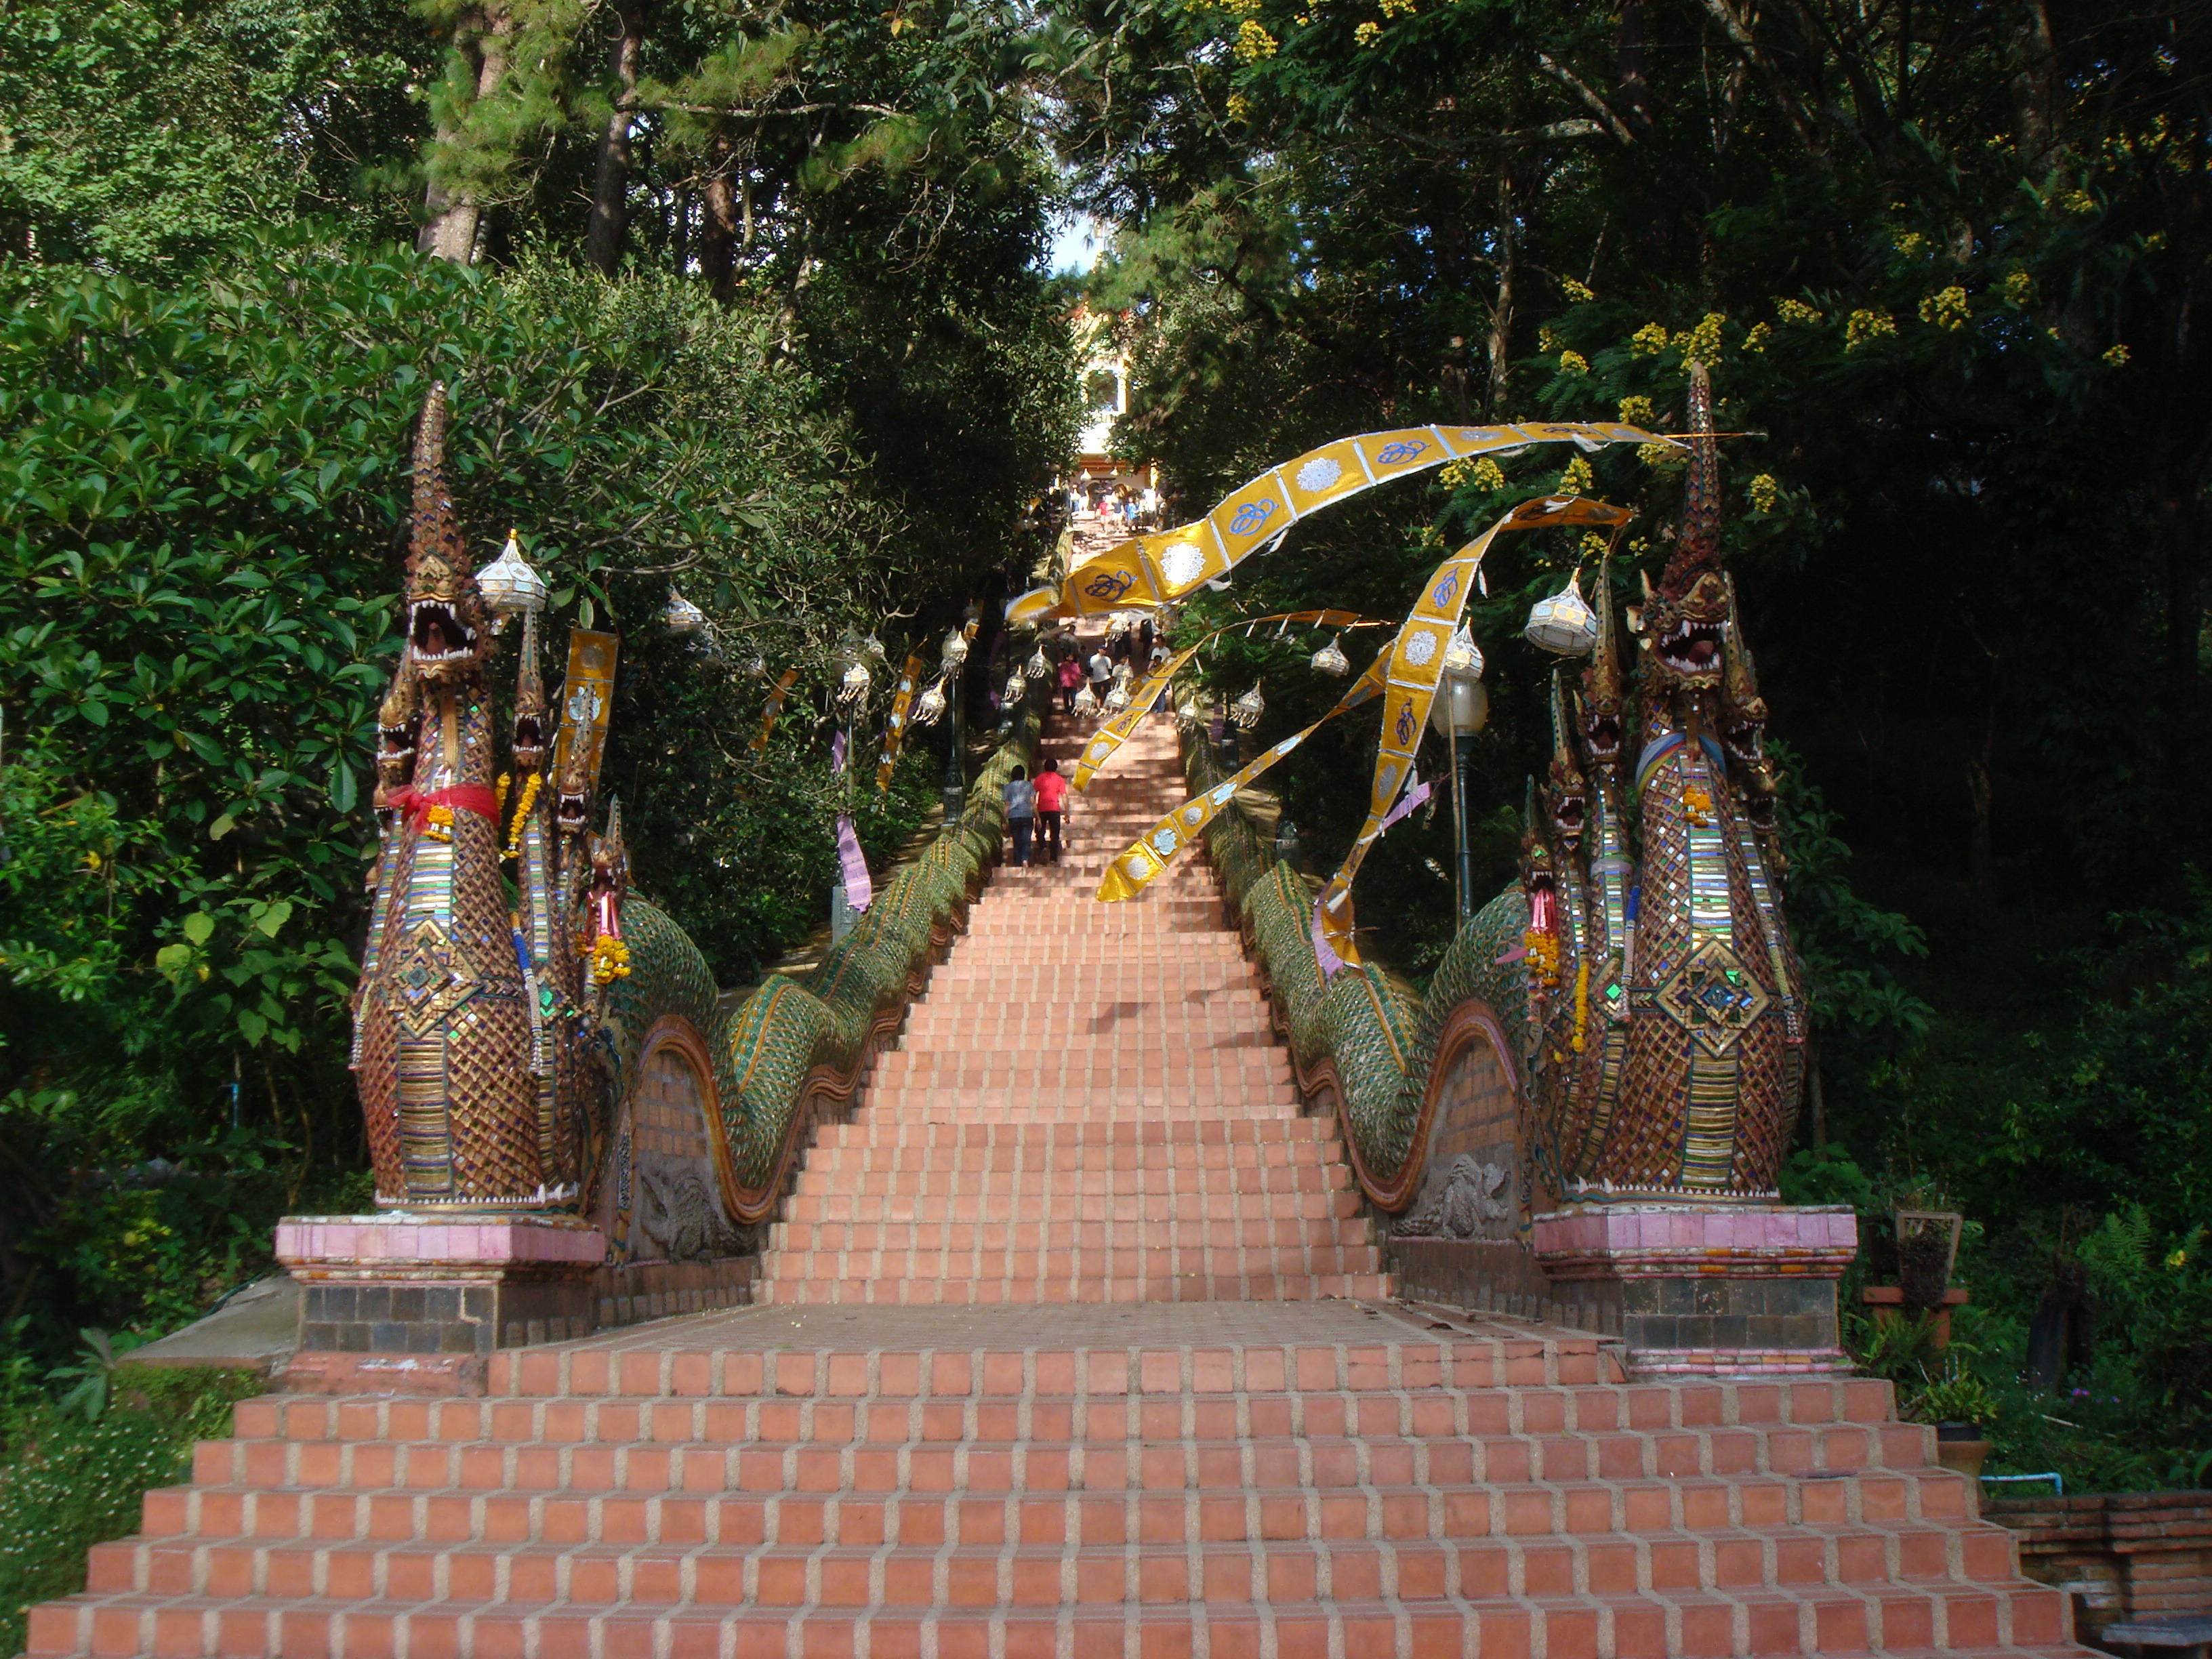 File:Wat Phra That Doi Suthep12.JPG - Wikimedia Commons